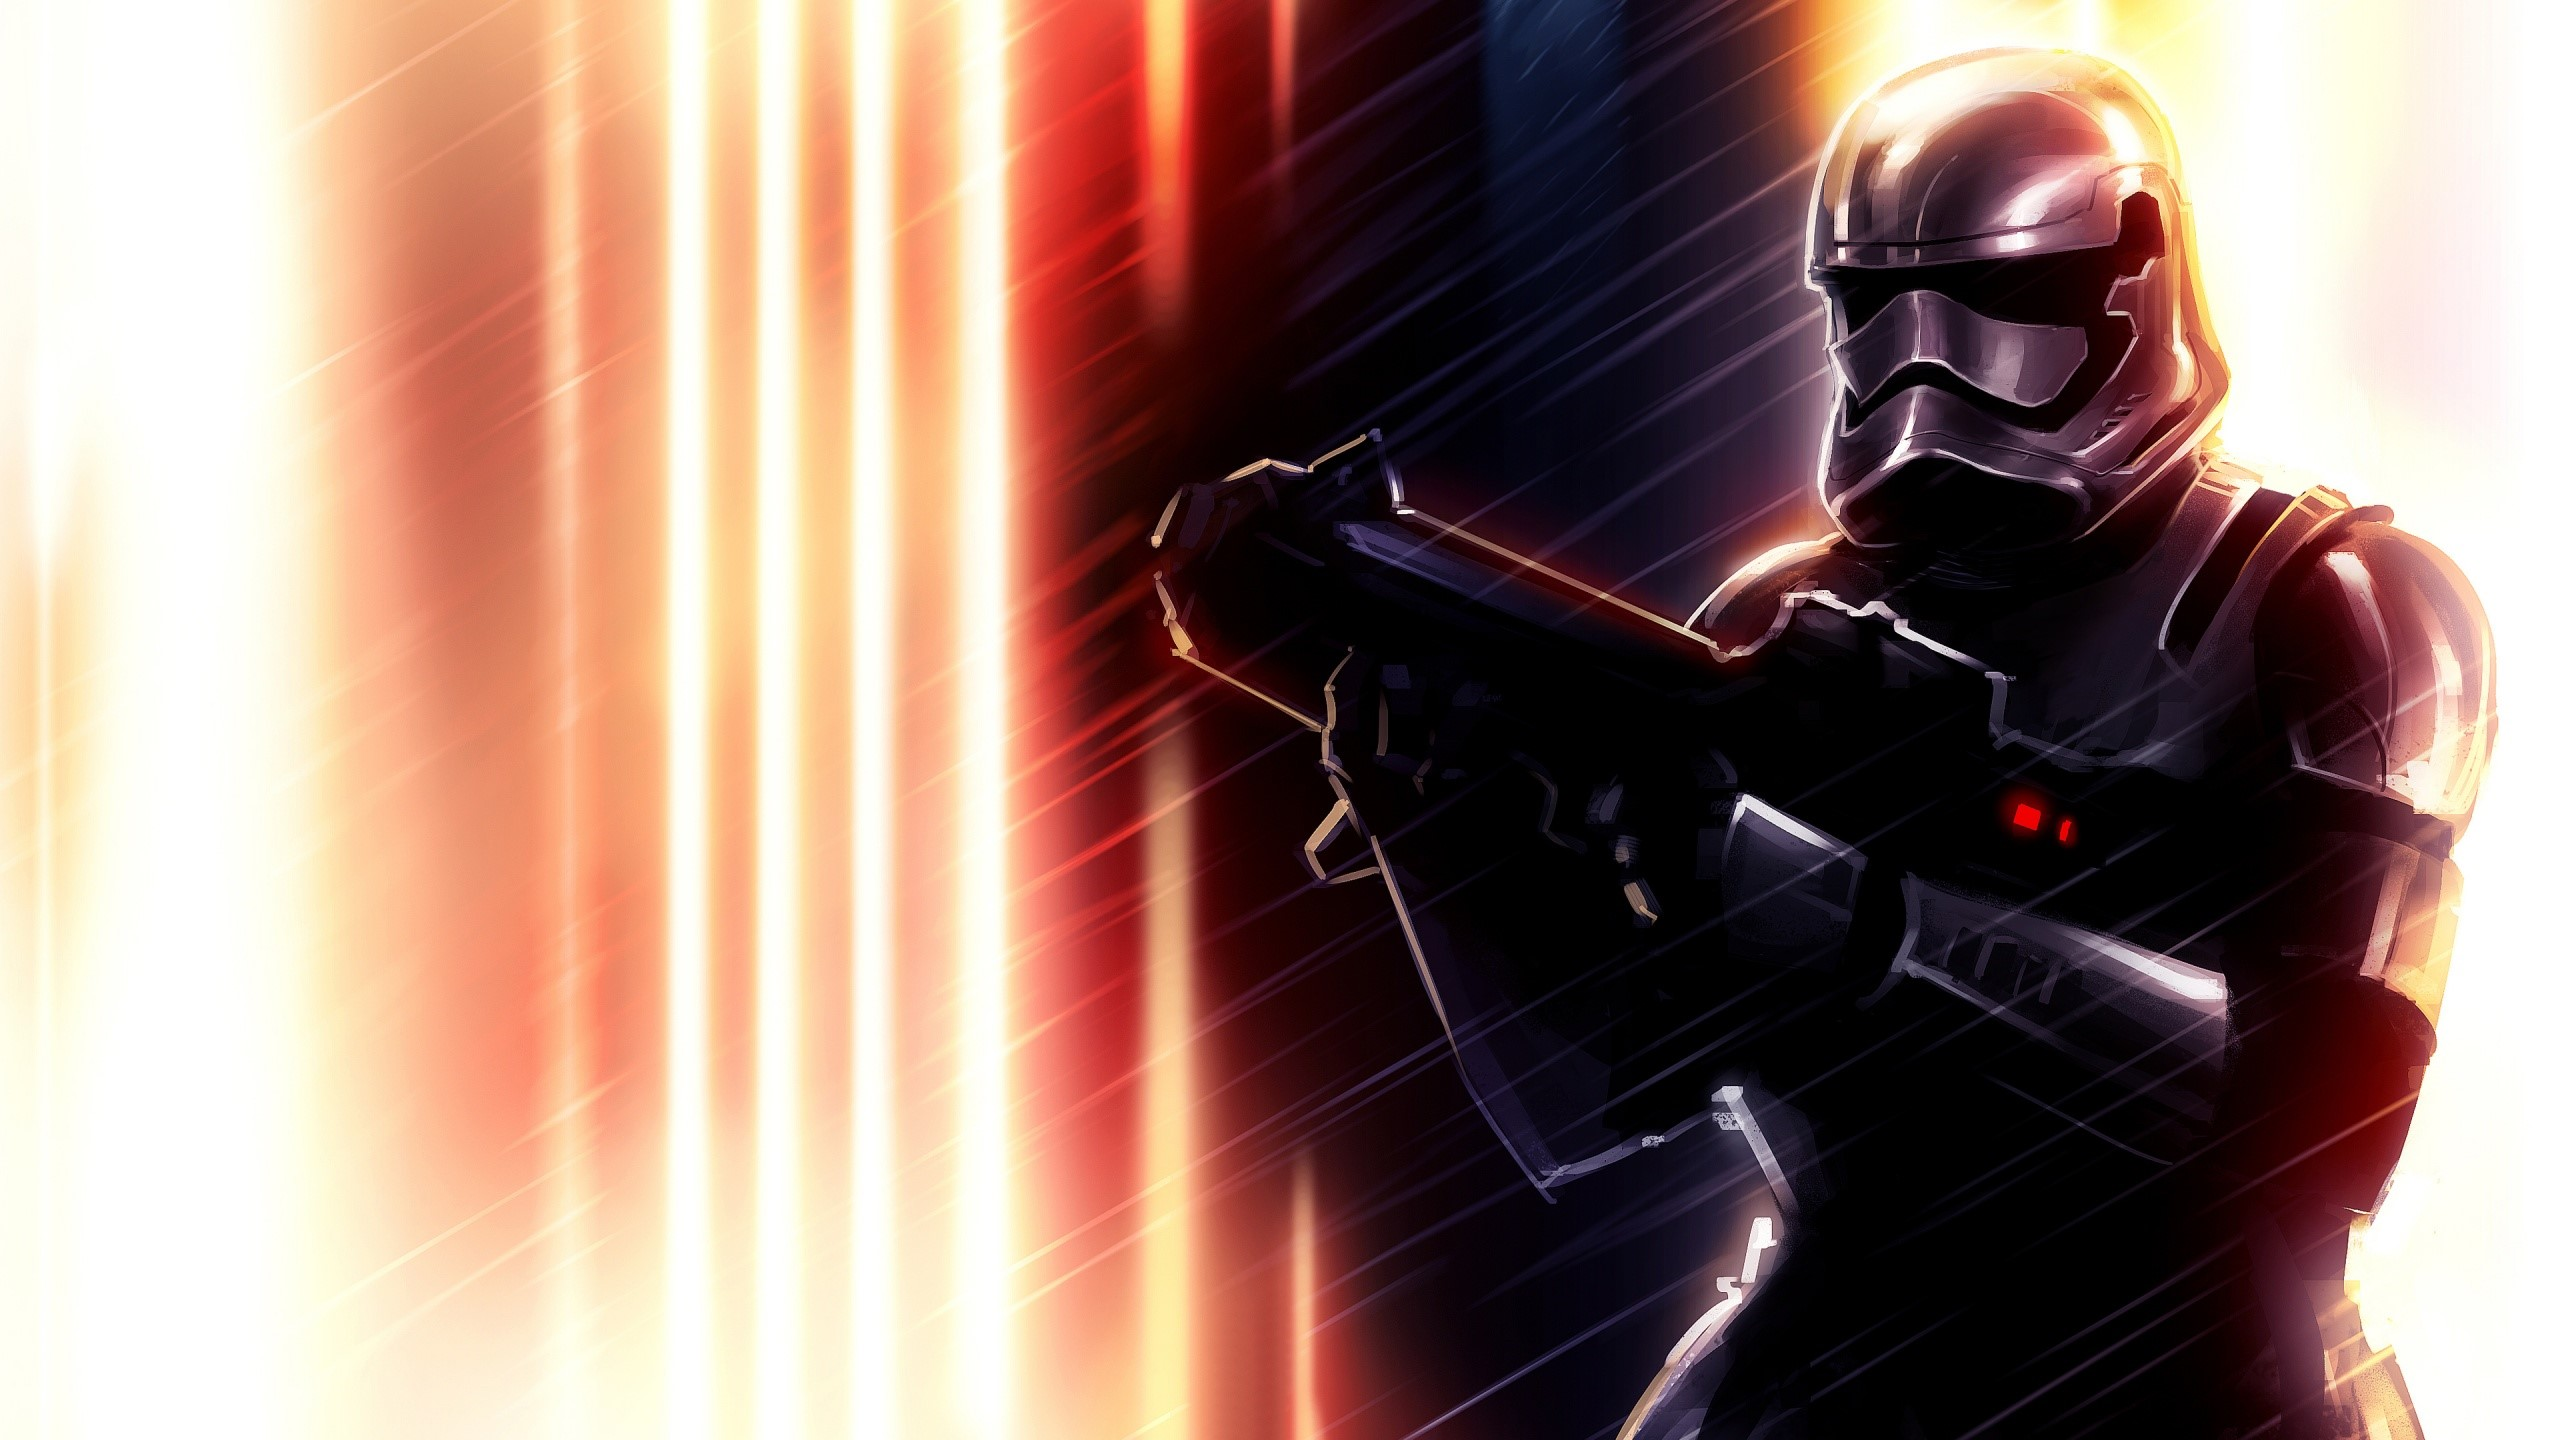 Wallpaper Imperial soldier